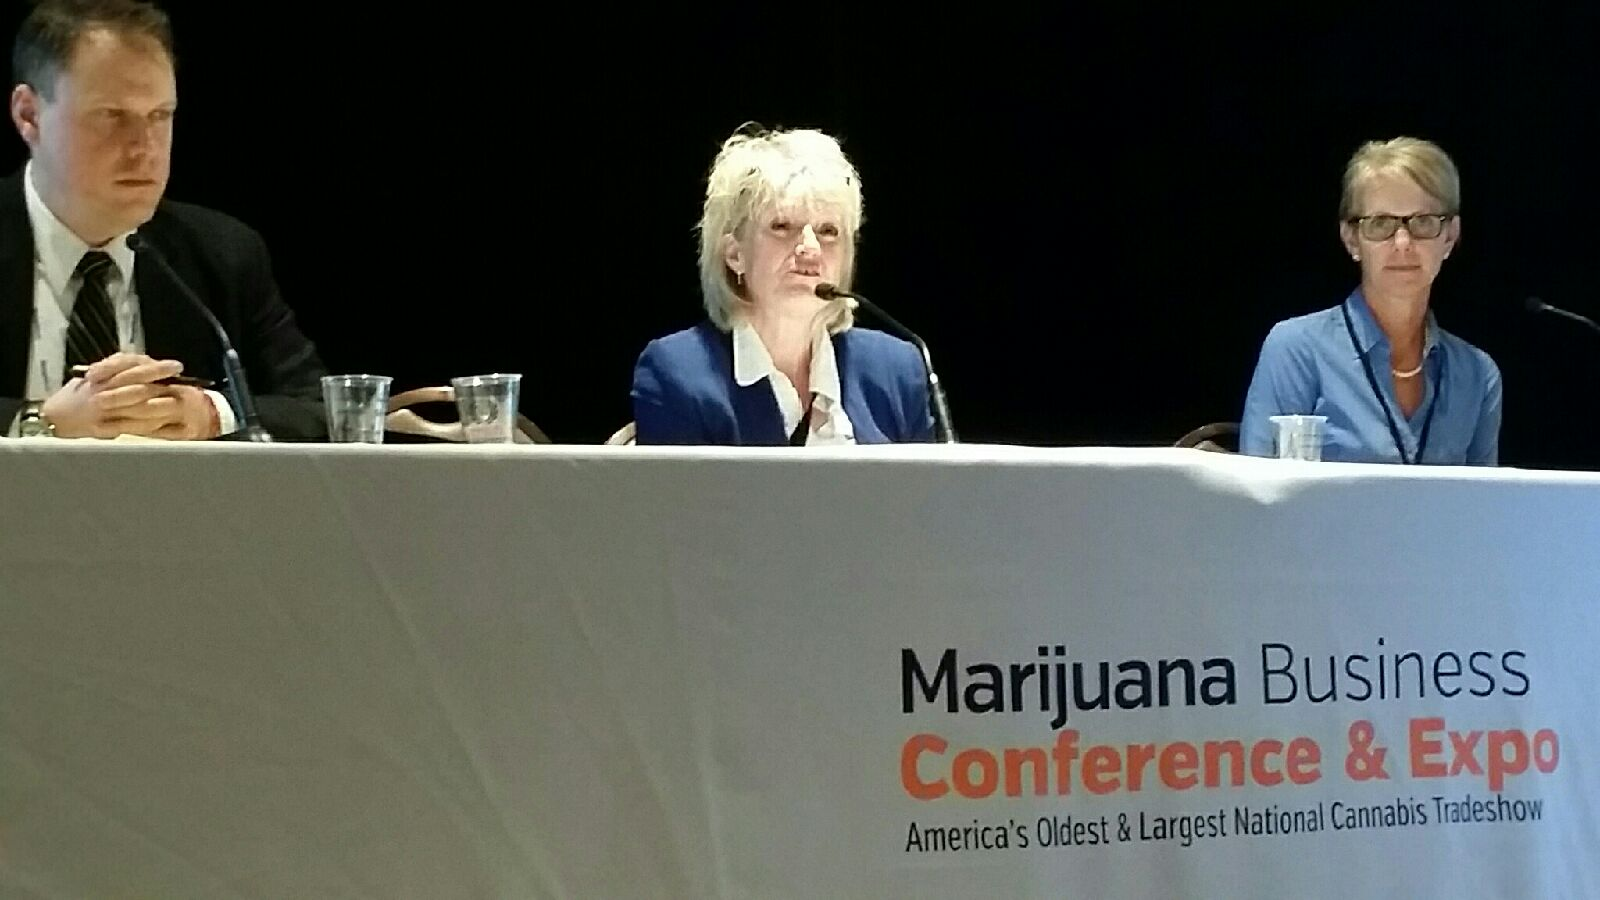 On a panel at Marijuana Business Conference & Expo (Las Vegas, NV)